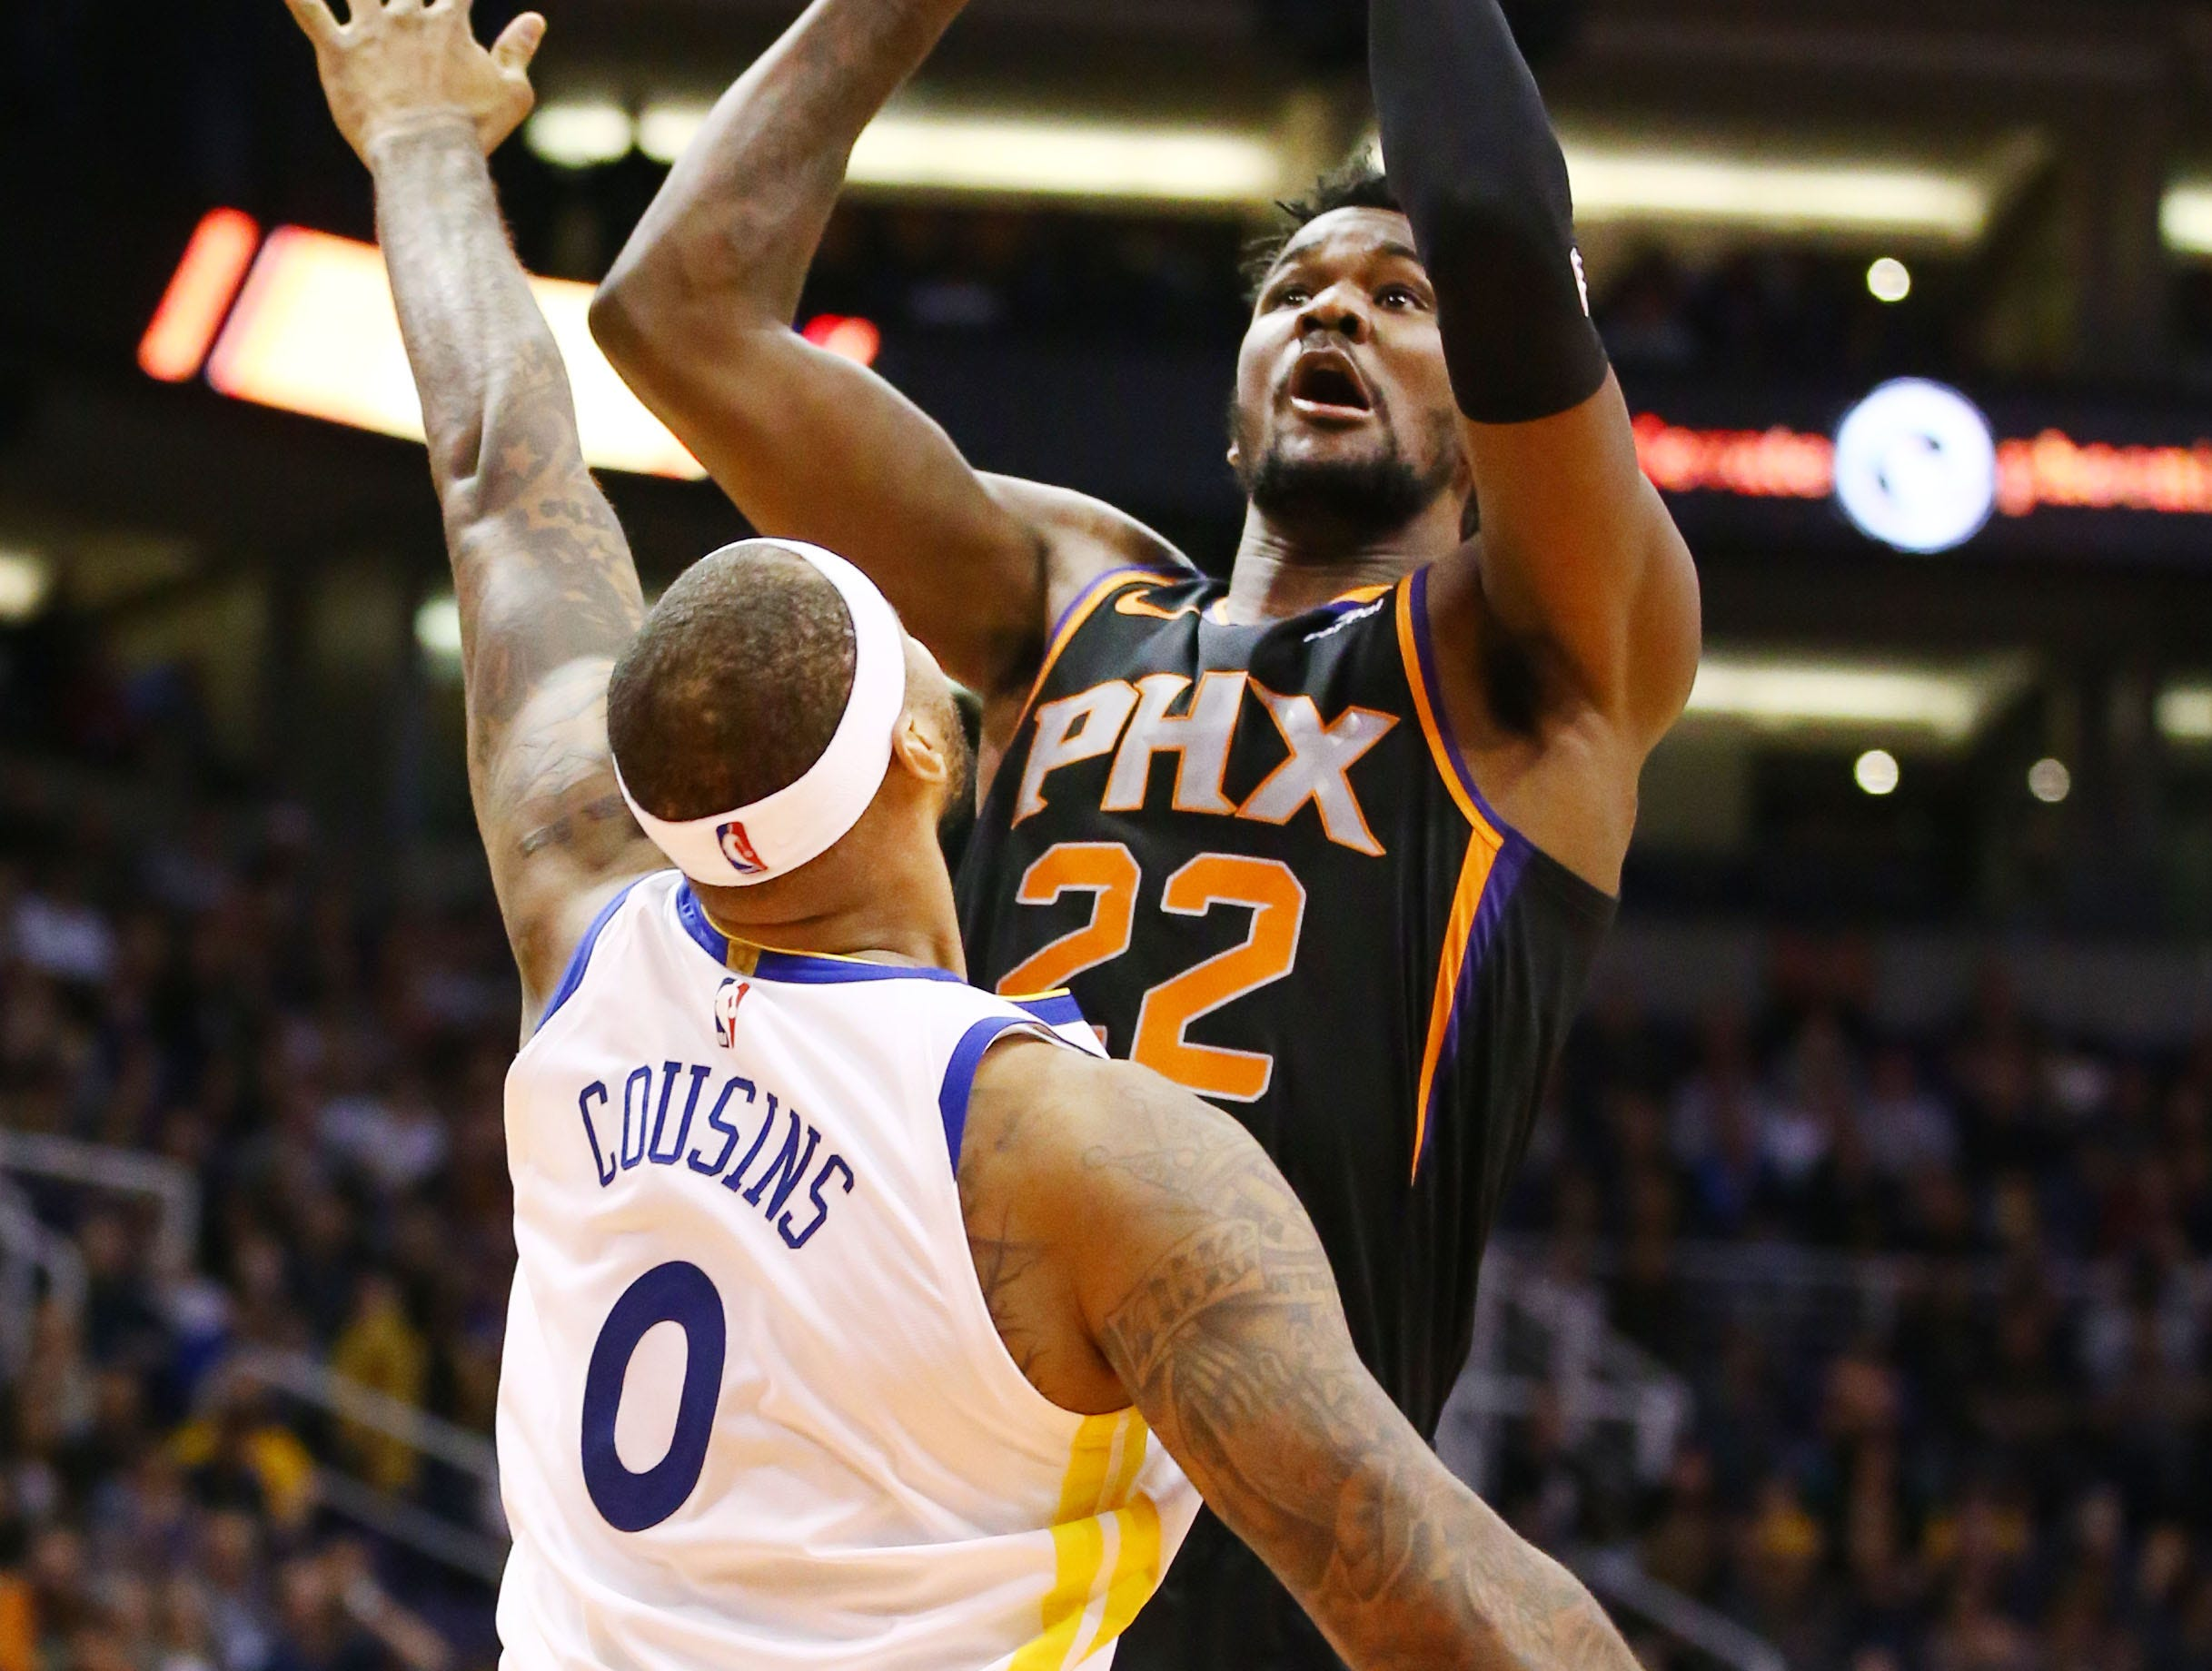 Phoenix Suns center Deandre Ayton takes a shot over Golden State Warriors center DeMarcus Cousins in the first half on Feb. 8 at Talking Stick Resort Arena.